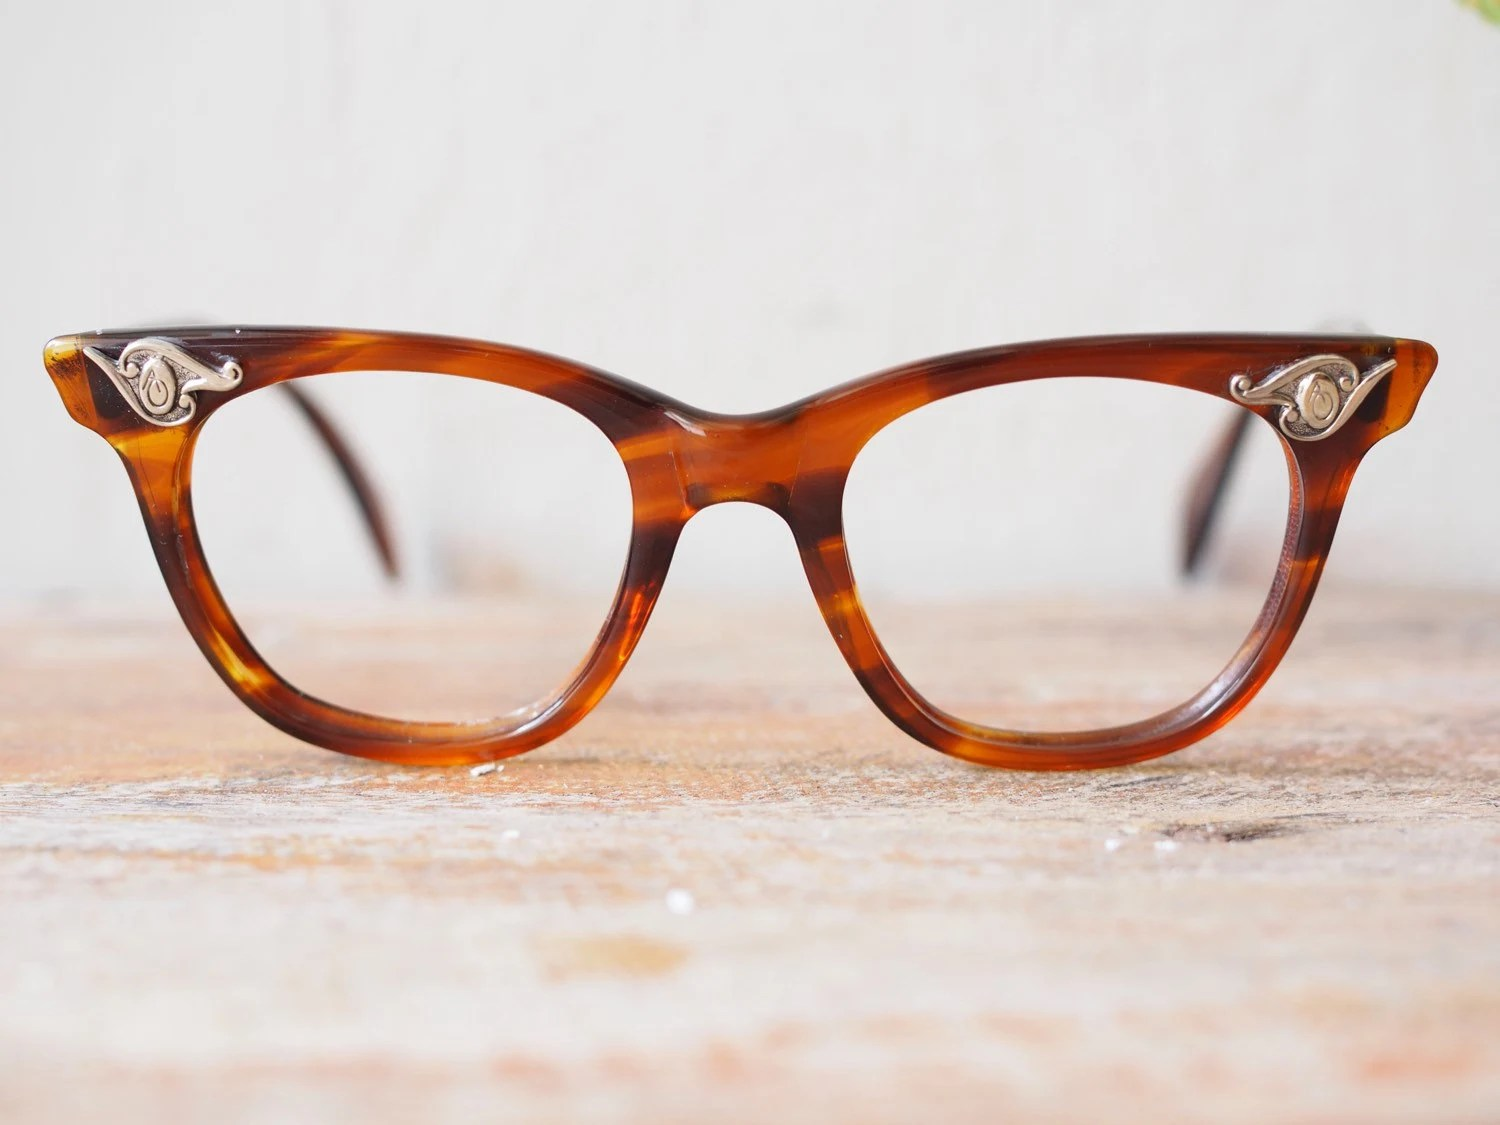 Eyewear Frames Made In Usa : Vintage American Optical Eyeglasses 1950 s Tortoise Shell ...